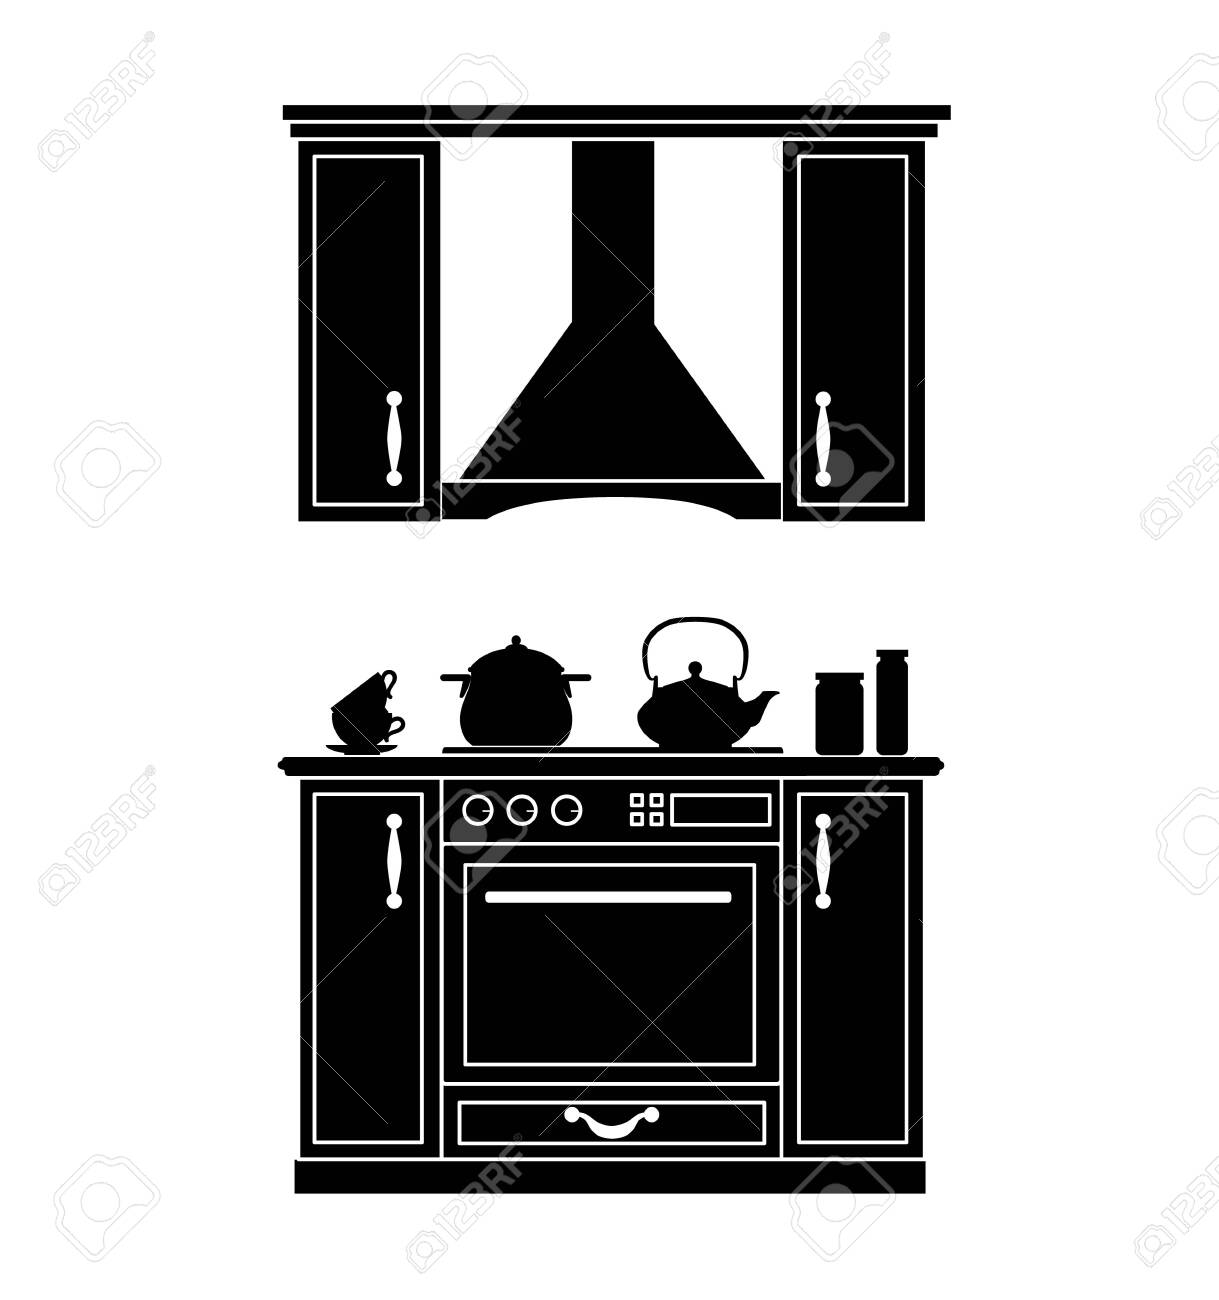 Silhouette Of The Kitchen Vector Black White Stencil Furniture Royalty Free Cliparts Vectors And Stock Illustration Image 124176664